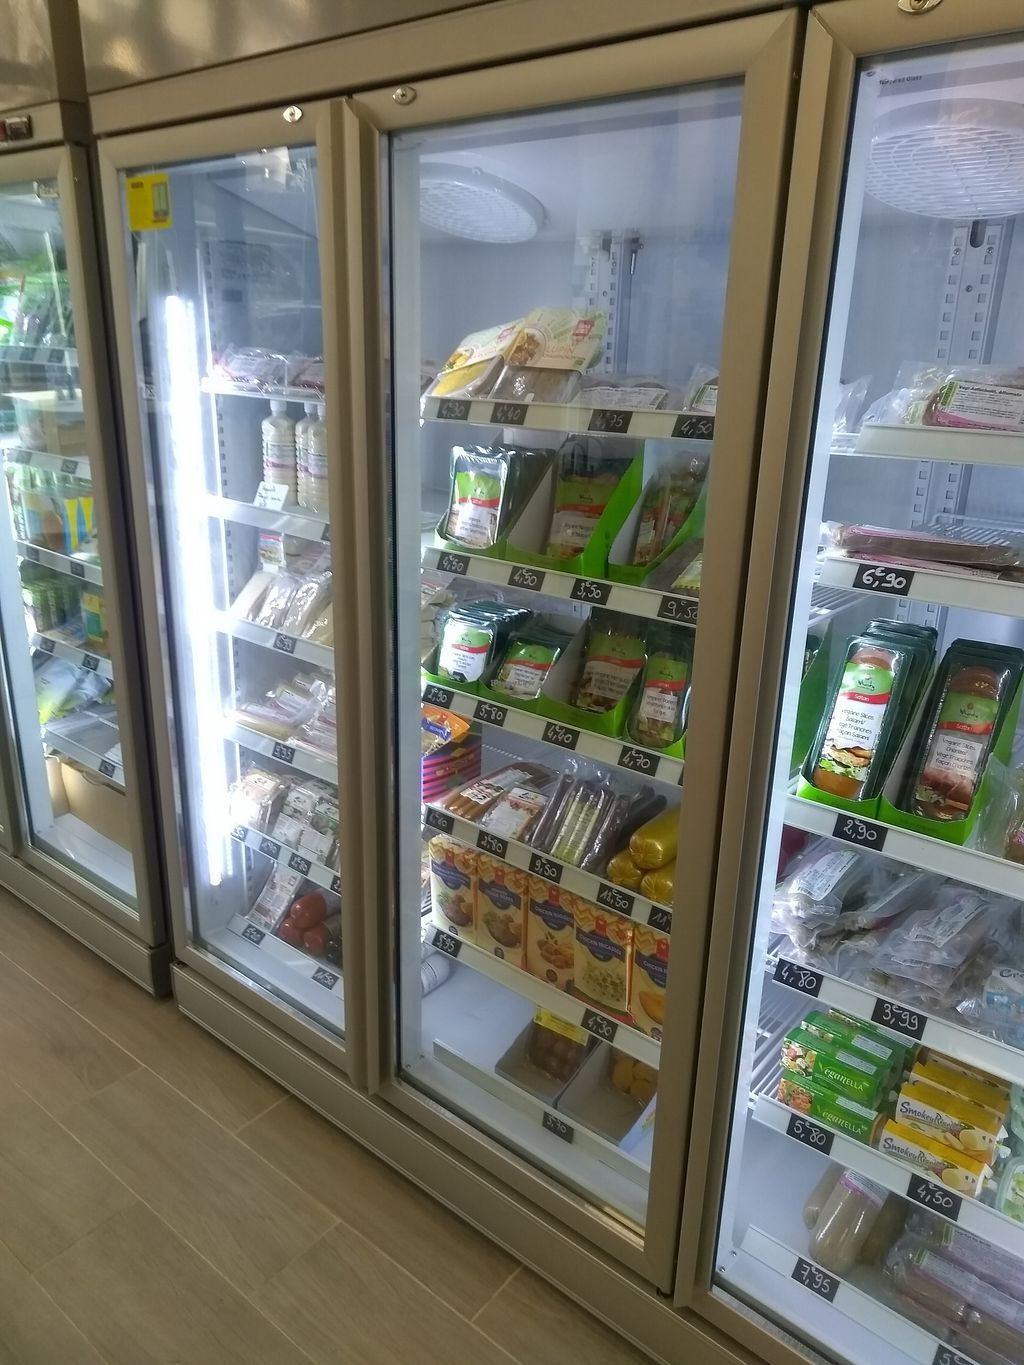 """Photo of 2VShop  by <a href=""""/members/profile/thenaturalfusions"""">thenaturalfusions</a> <br/>Vegan cheezes in the fridge <br/> November 13, 2017  - <a href='/contact/abuse/image/104079/325114'>Report</a>"""